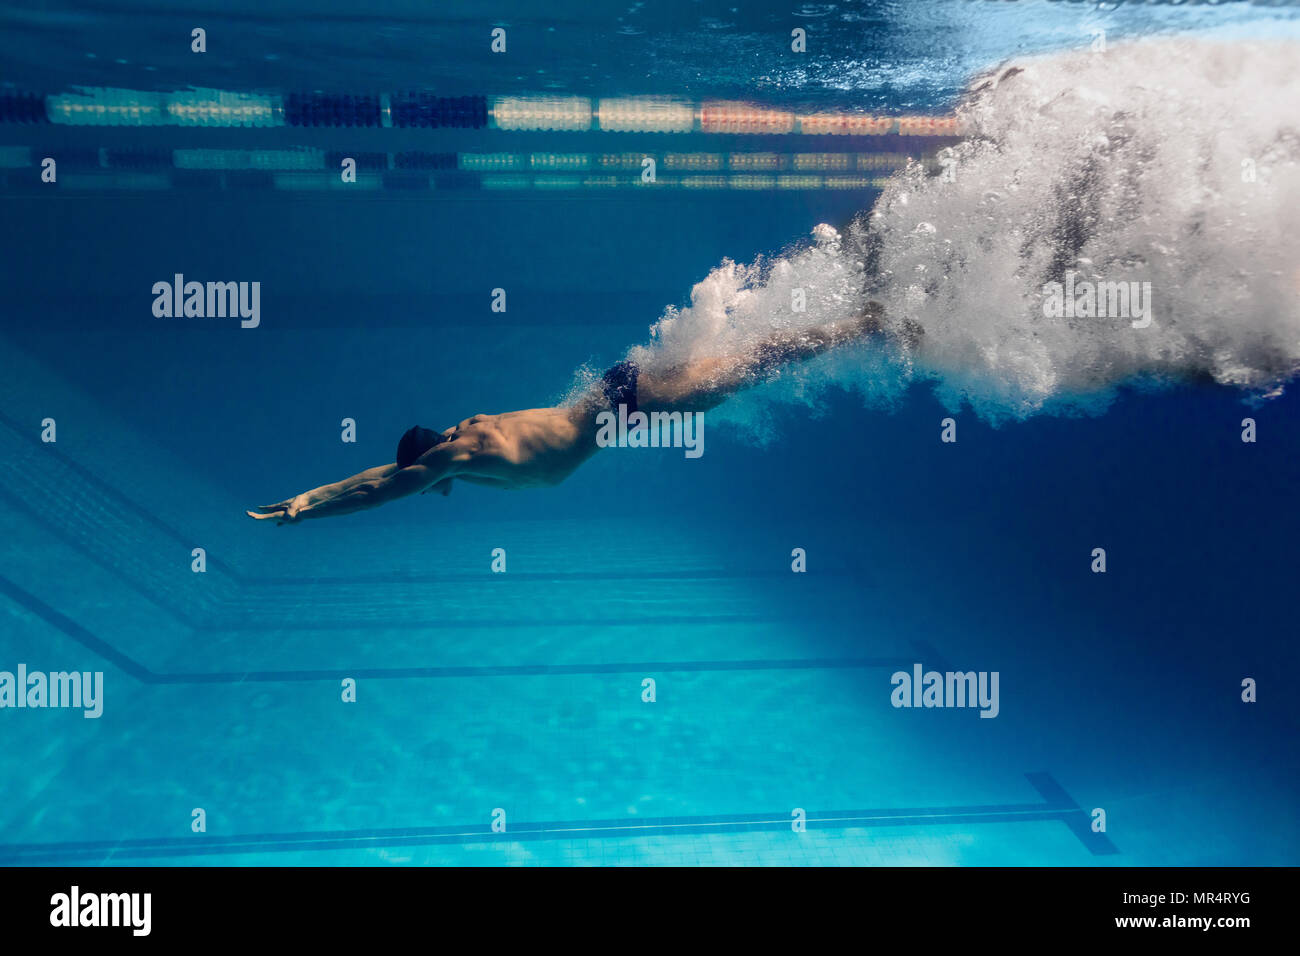 underwater picture of male swimmer swimming i swimming pool - Stock Image